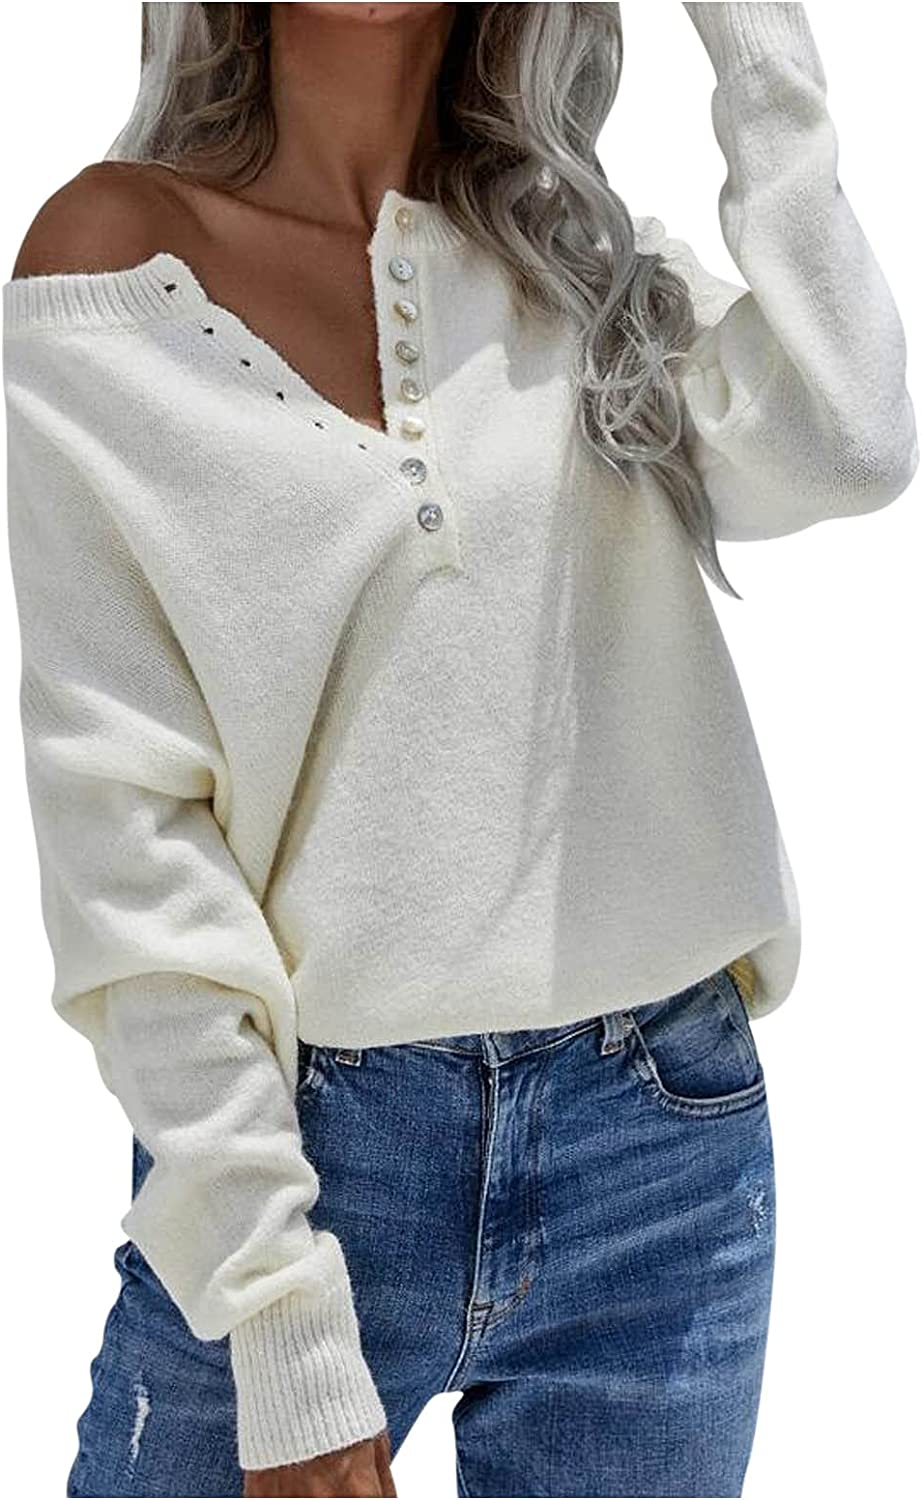 Women'S Solid Color Memphis Mall Street Hipster Ne Single-Breasted Round Very popular Thin